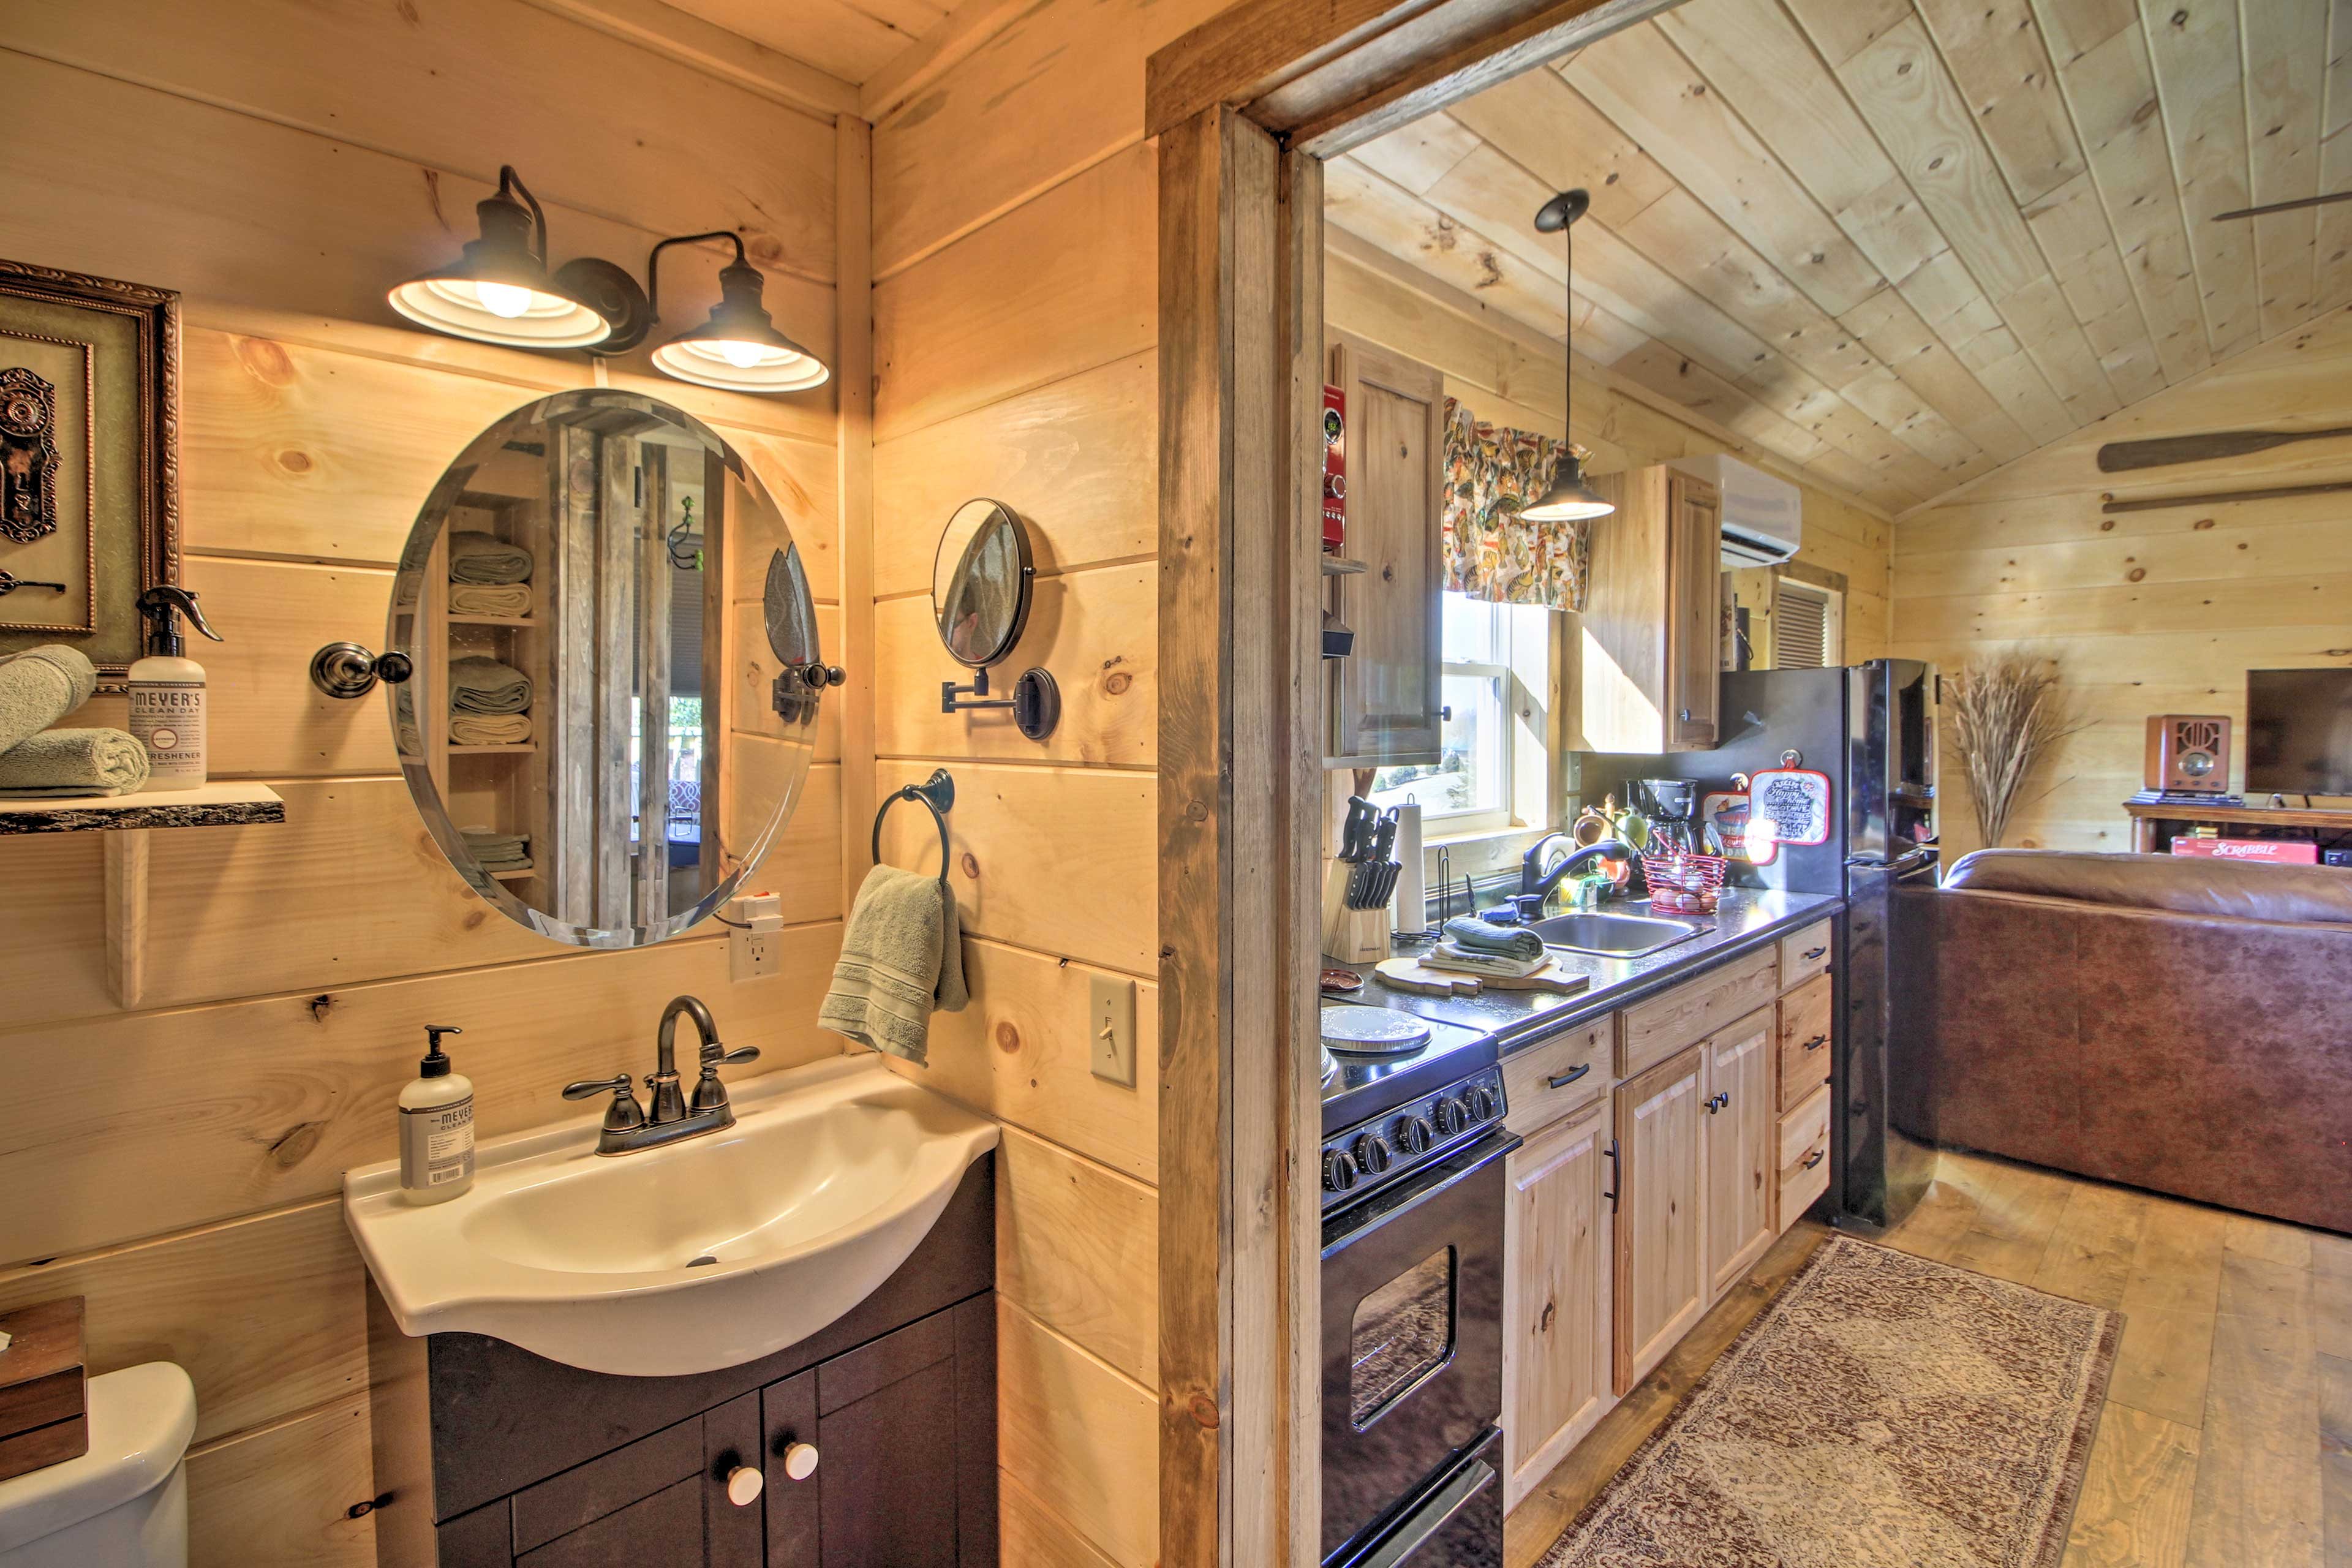 The property features 1 full bathroom.